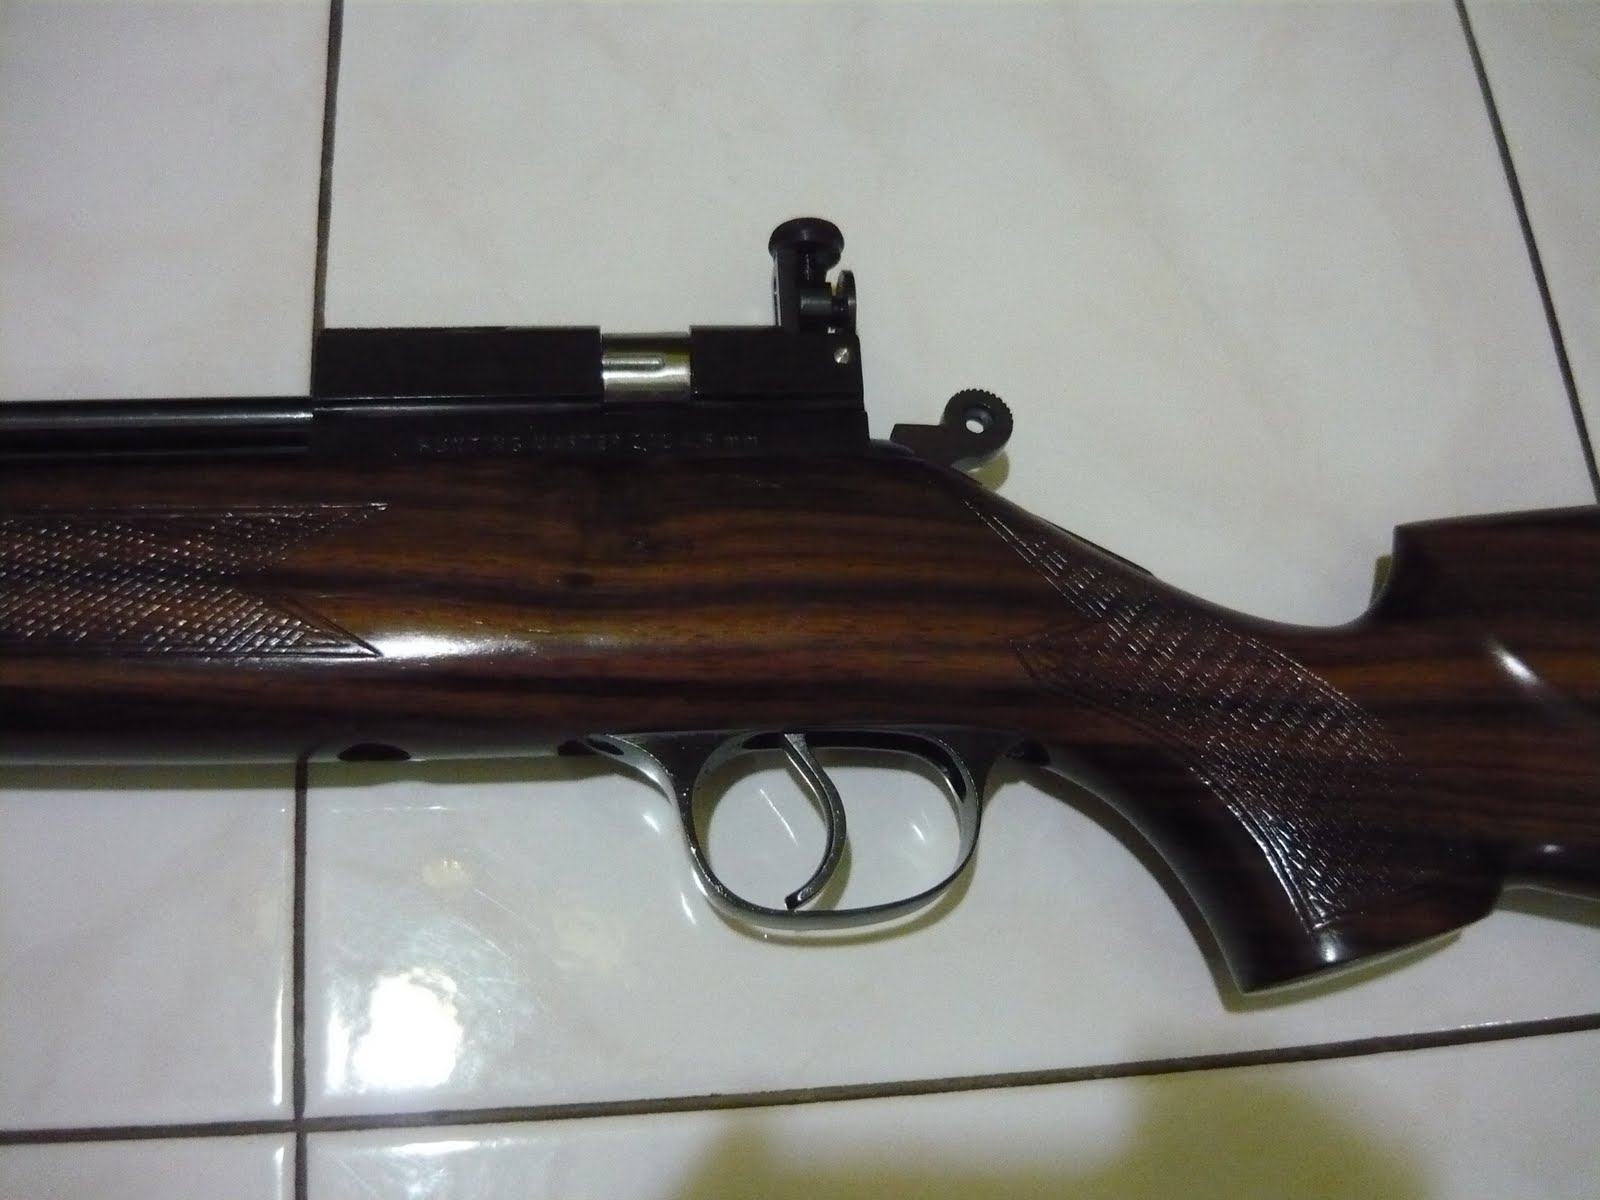 Laras Senapan Angin Barrel Air Rifle Pcp Jenis